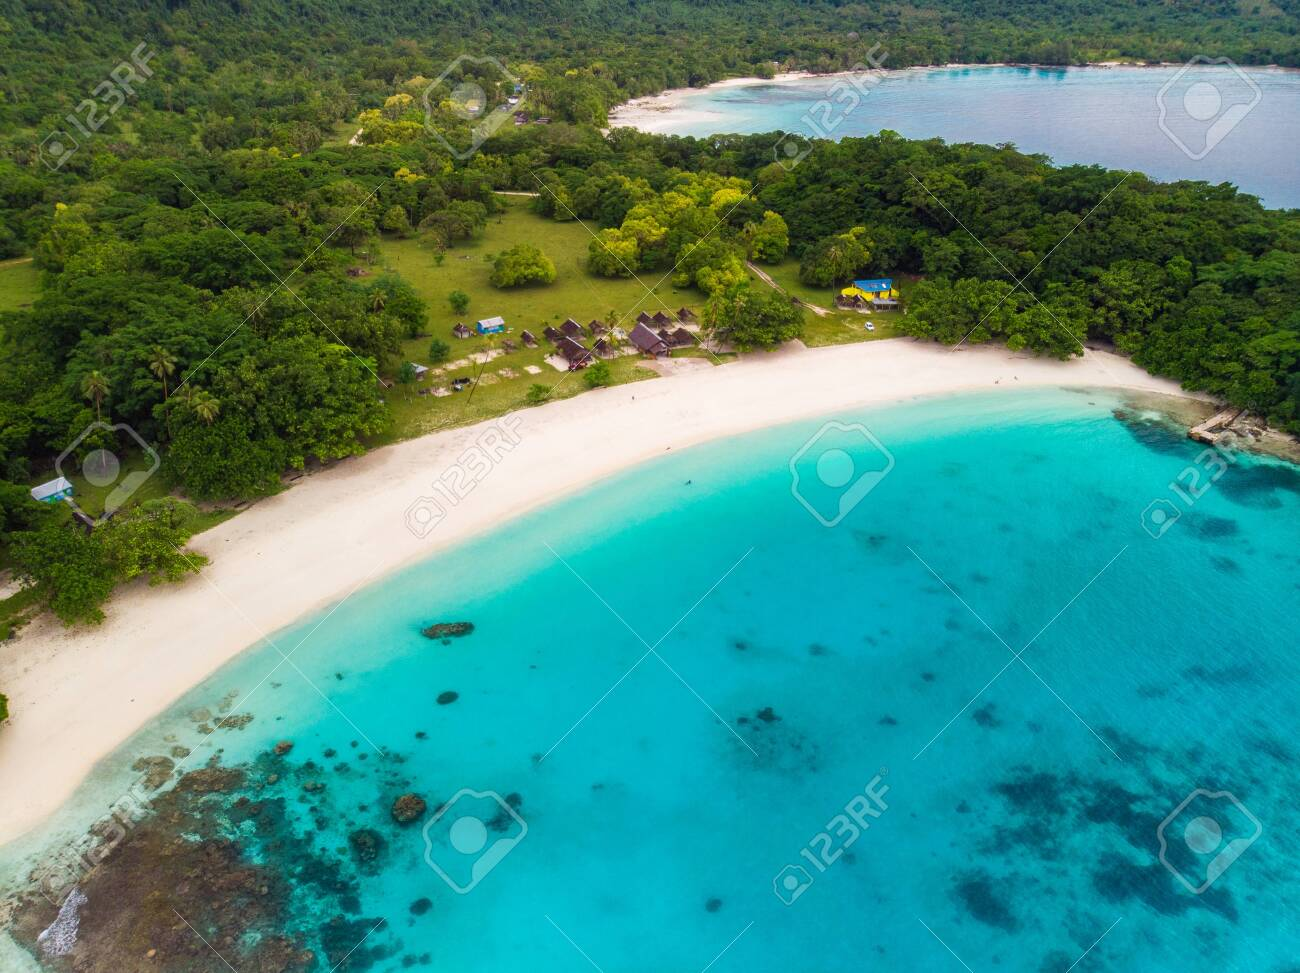 Drone View Champagne Beach Vanuatu Espiritu Santo Island Near Stock Photo Picture And Royalty Free Image Image 125675375